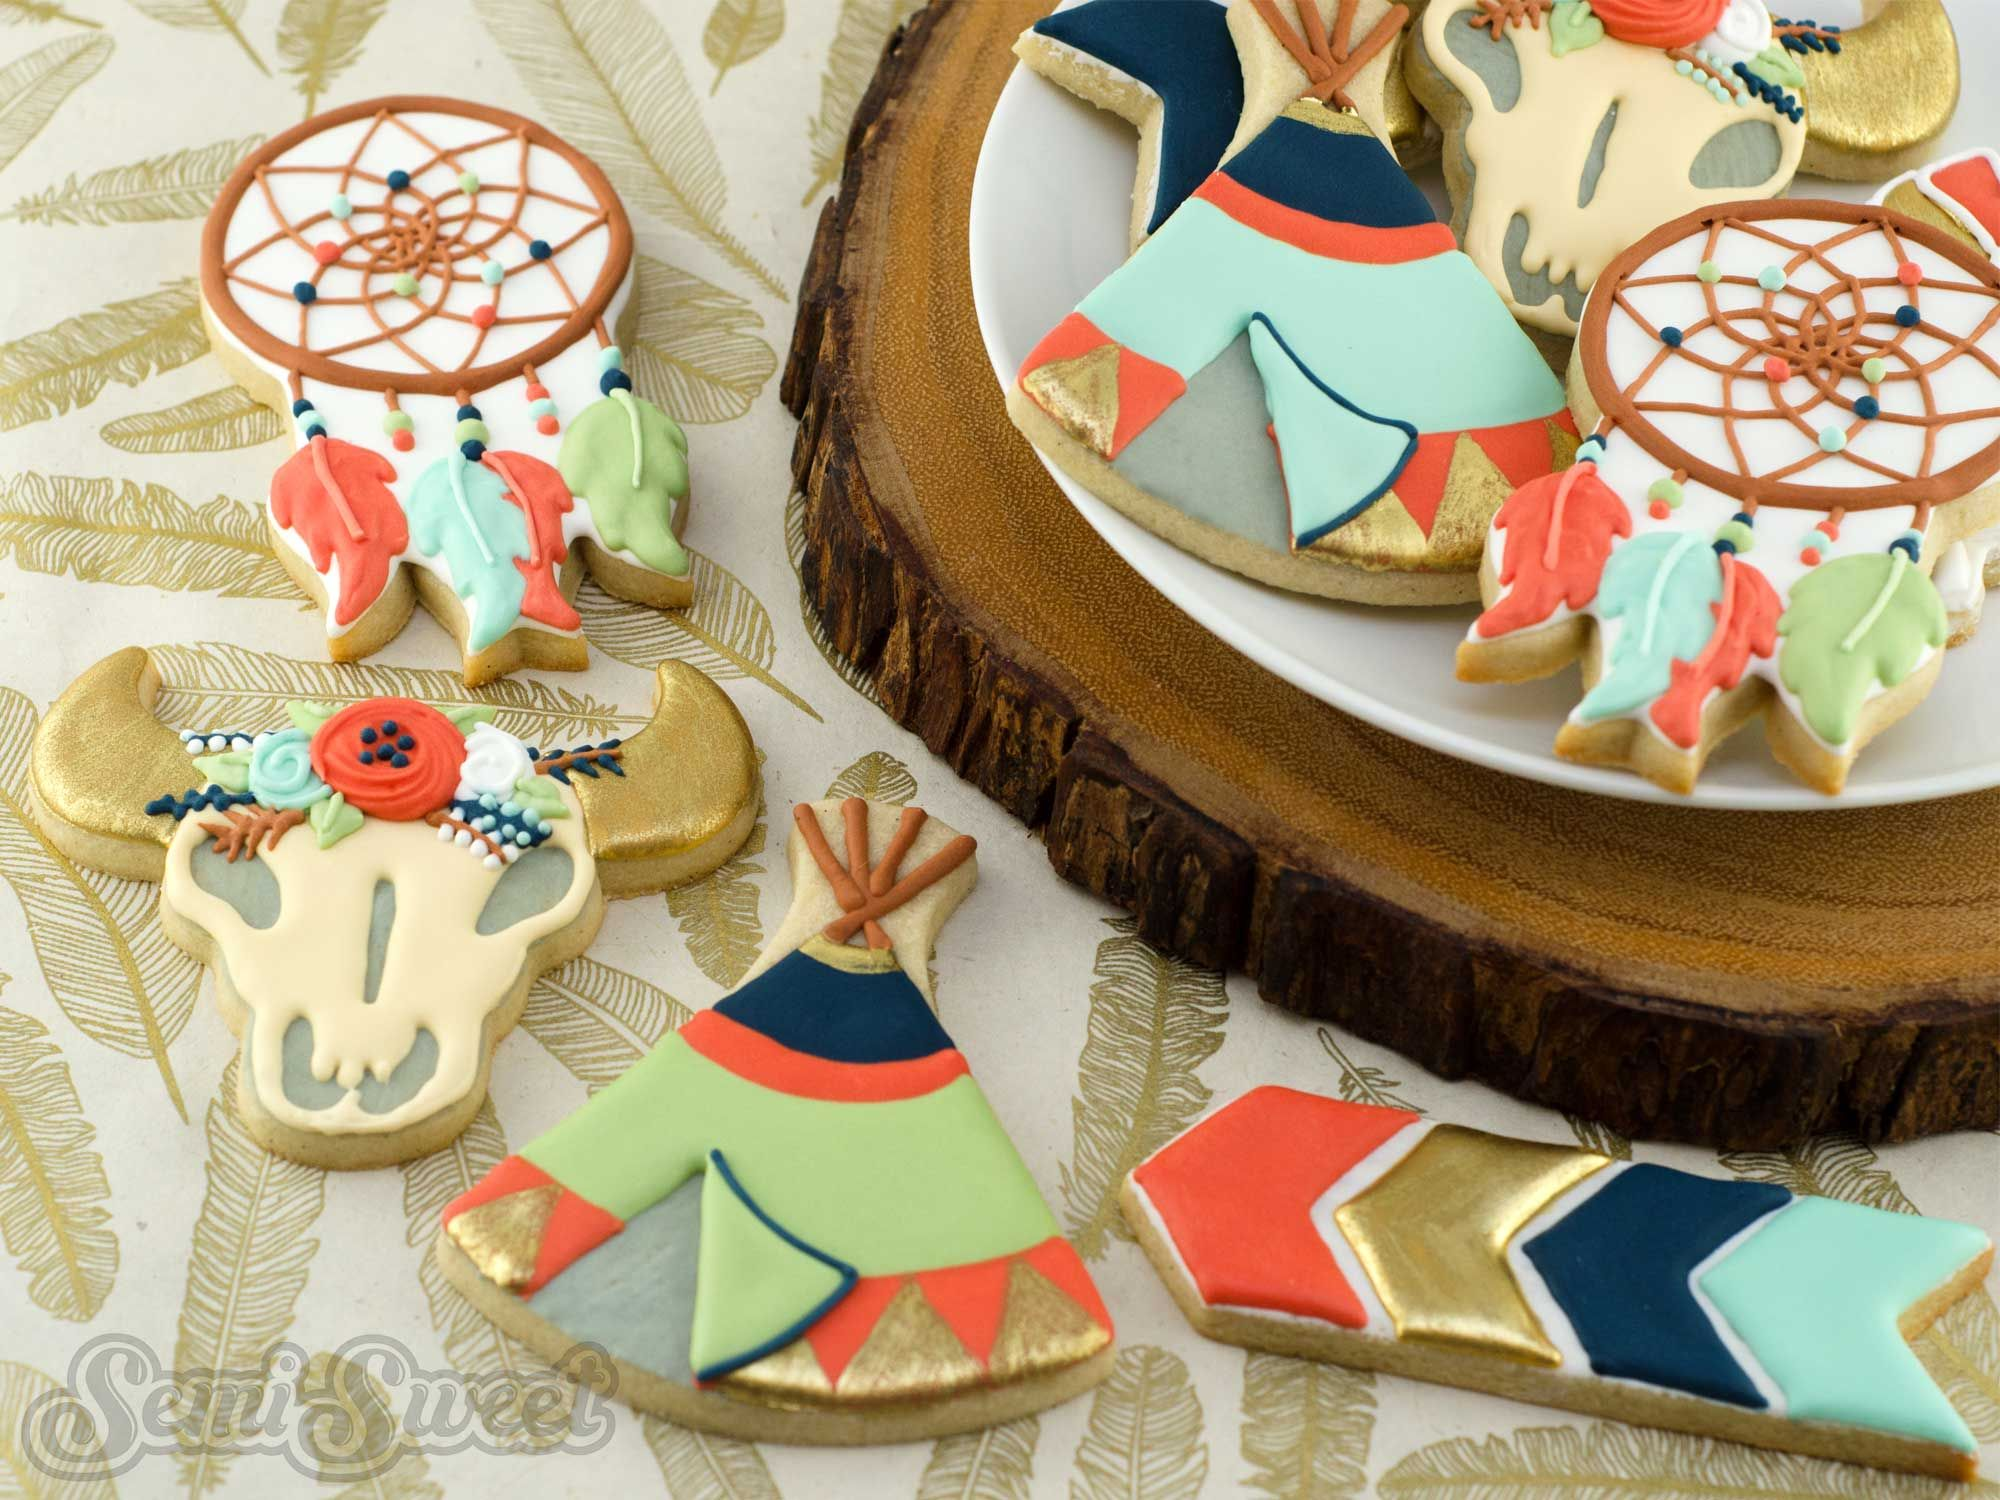 Boho Chic Pow Wow Party Cookies Semi Sweet Designs Decorated